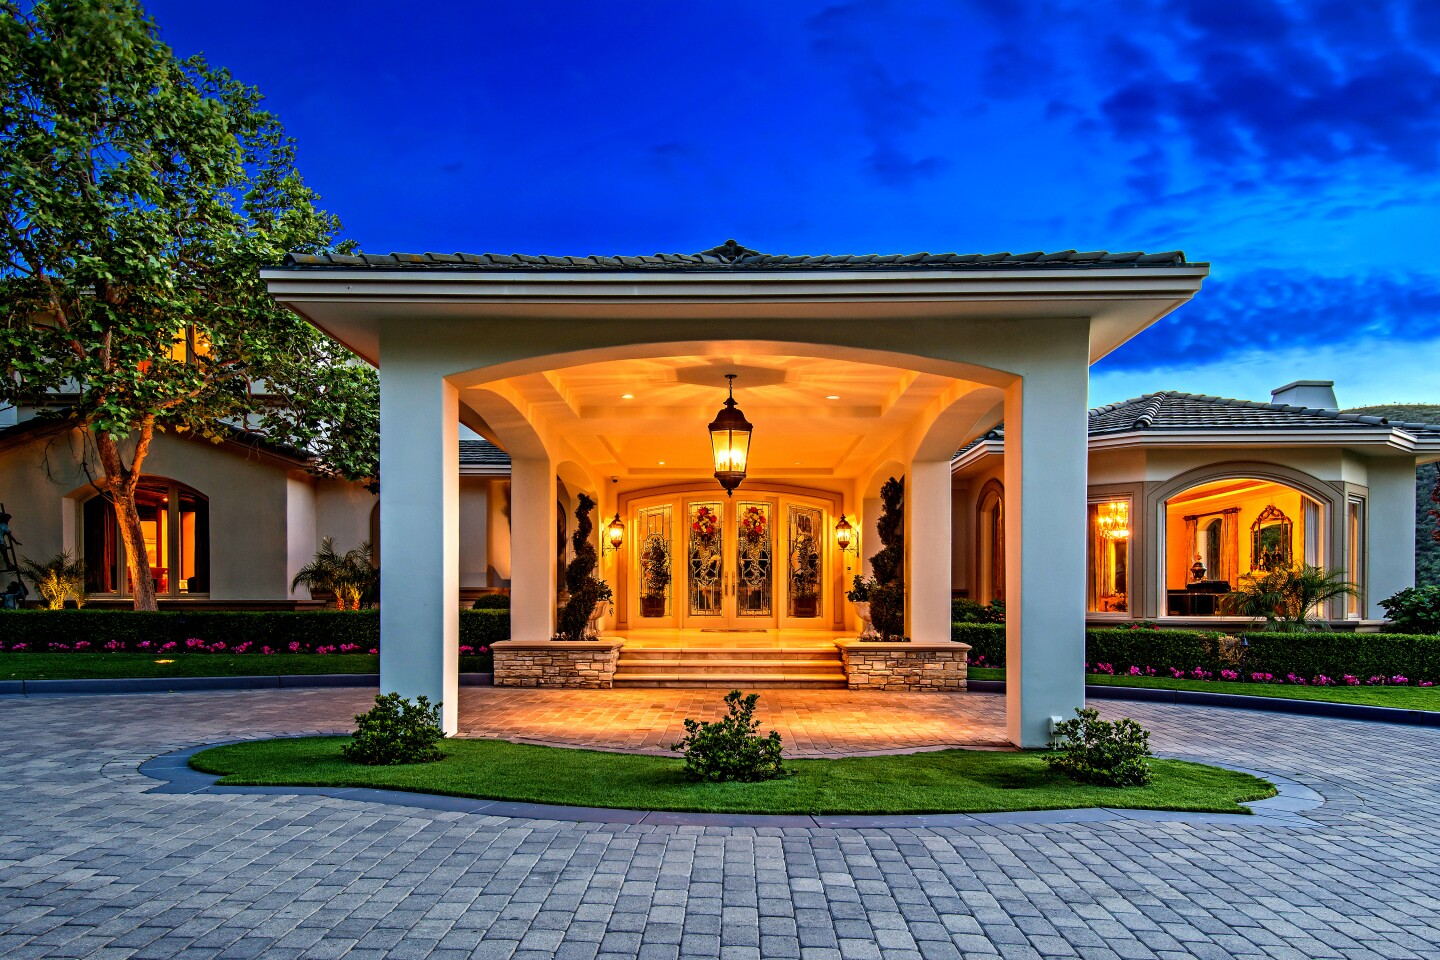 Ideal for an athlete, the Mediterranean-style mansions boasts an indoor basketball court complete with a scoreboard, skylights and a viewing box.